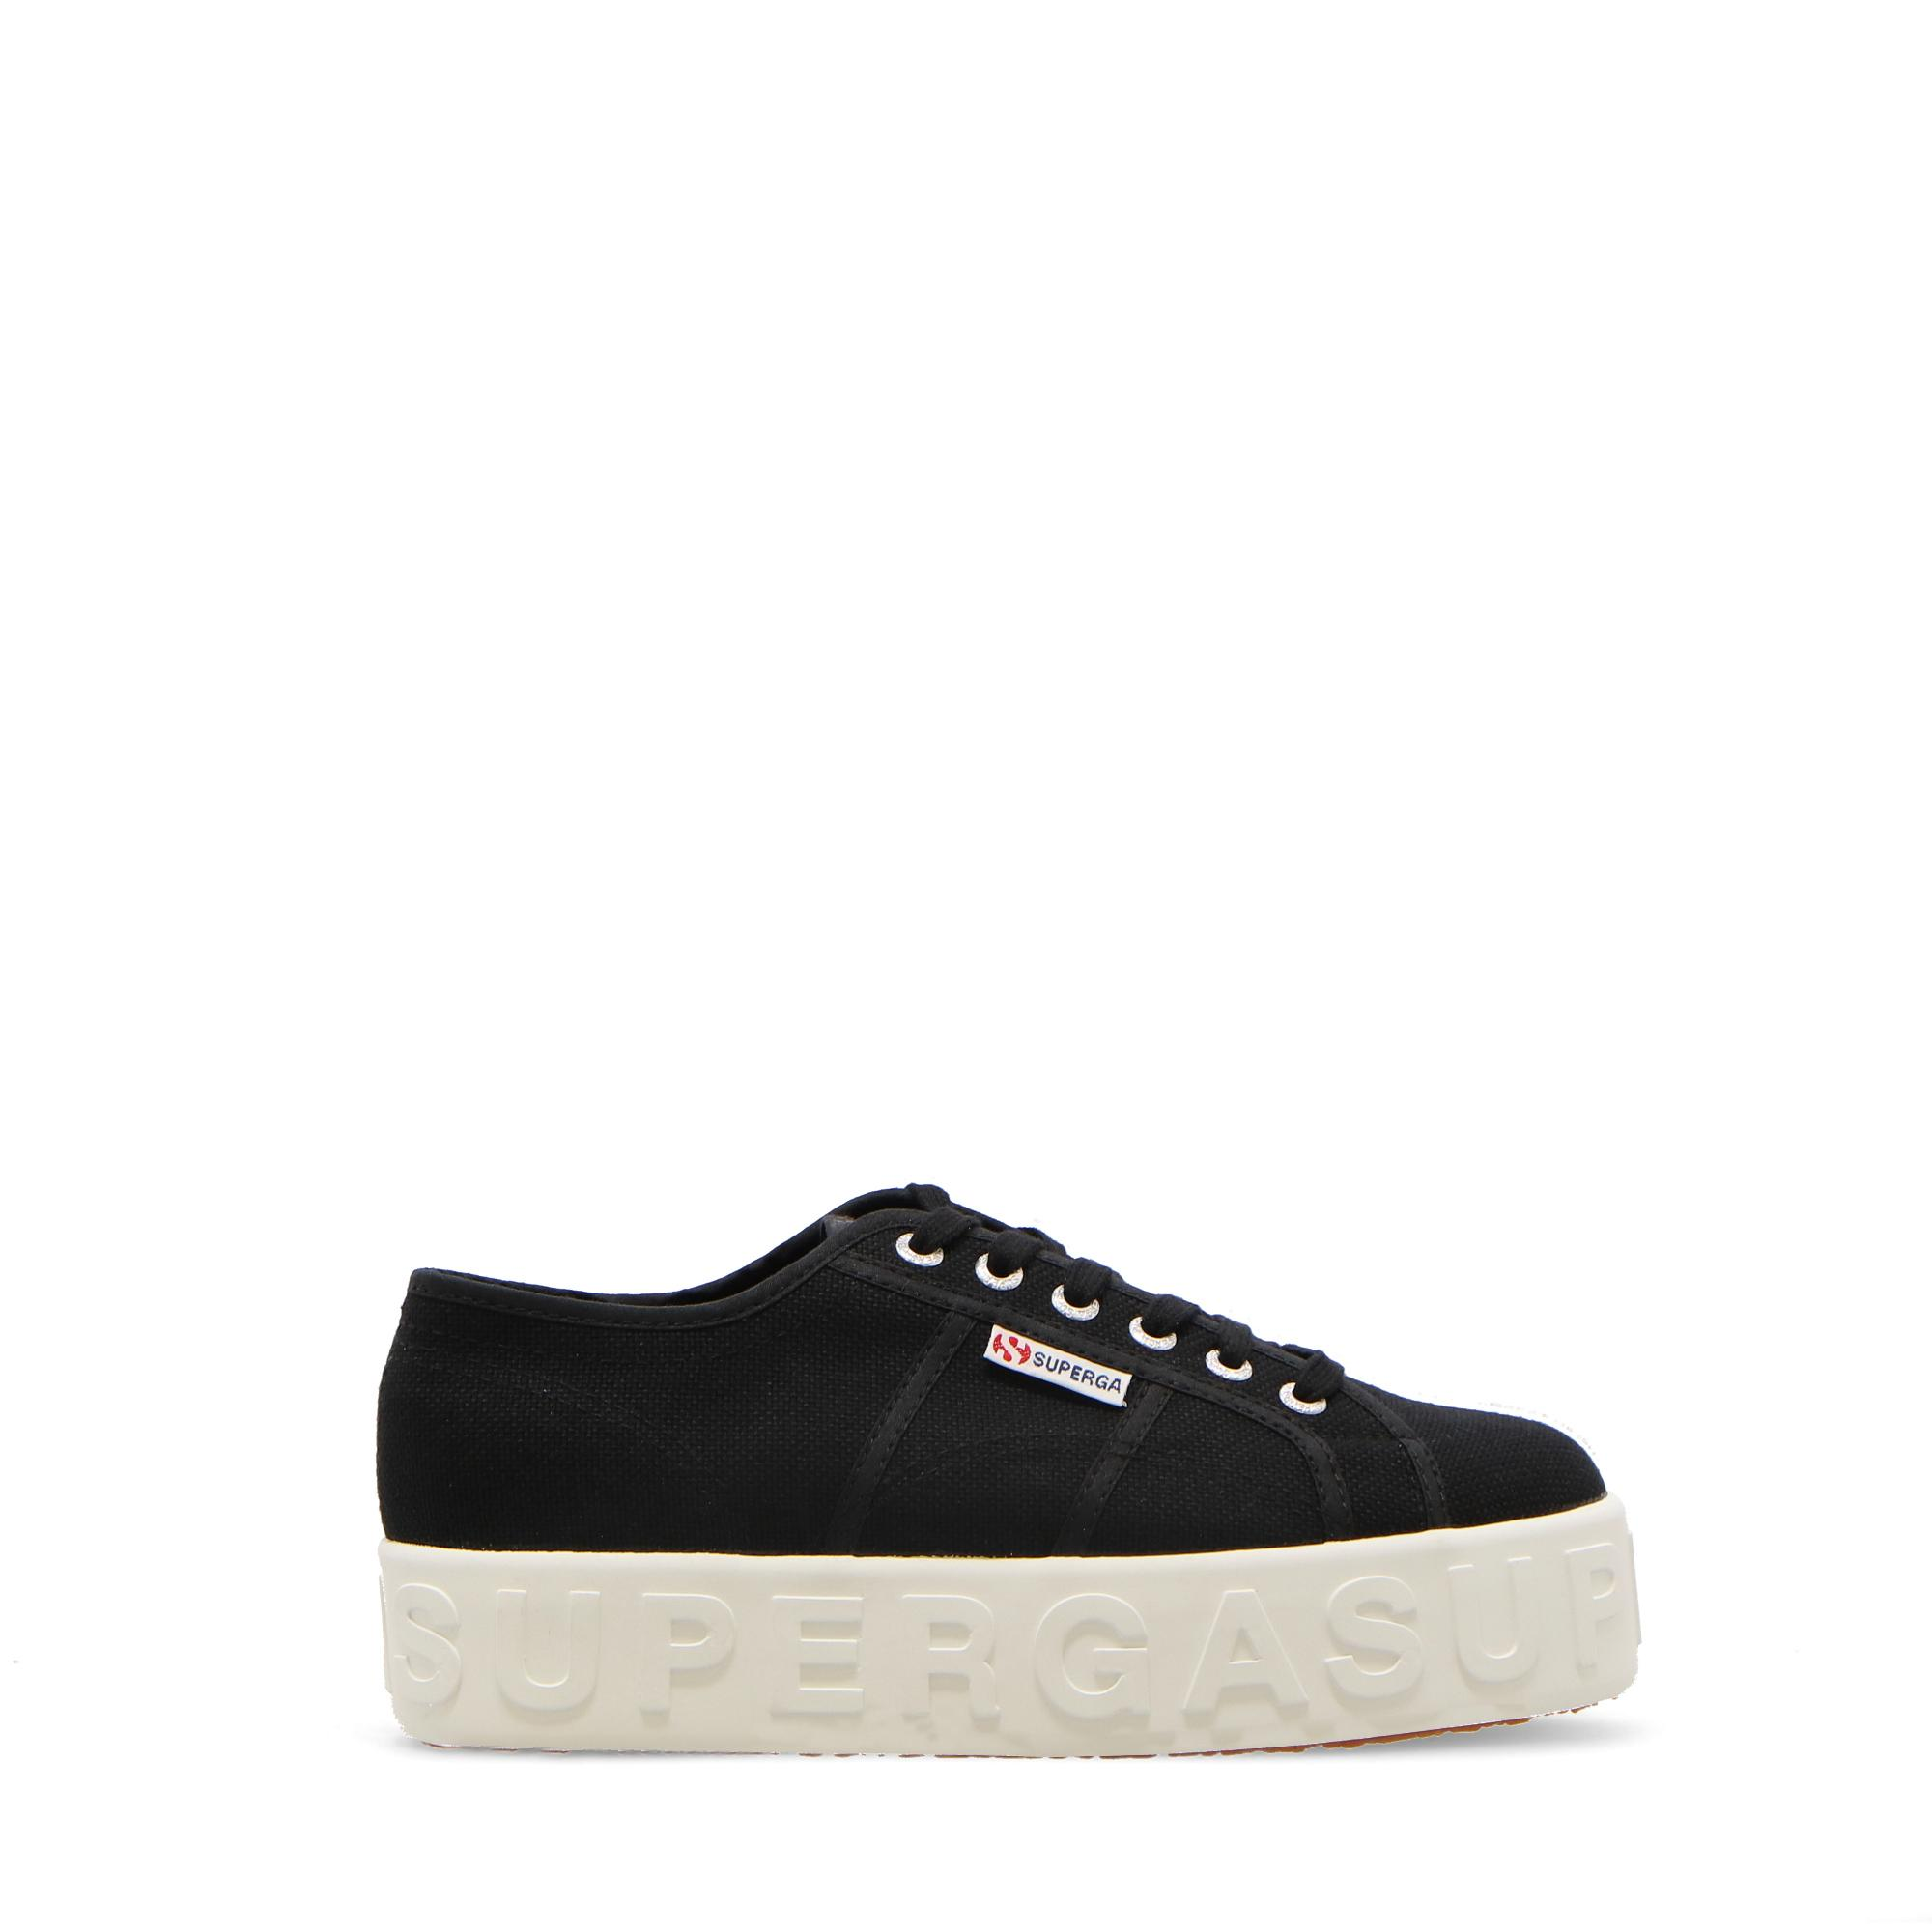 Superga 2790 3d Lettering Black